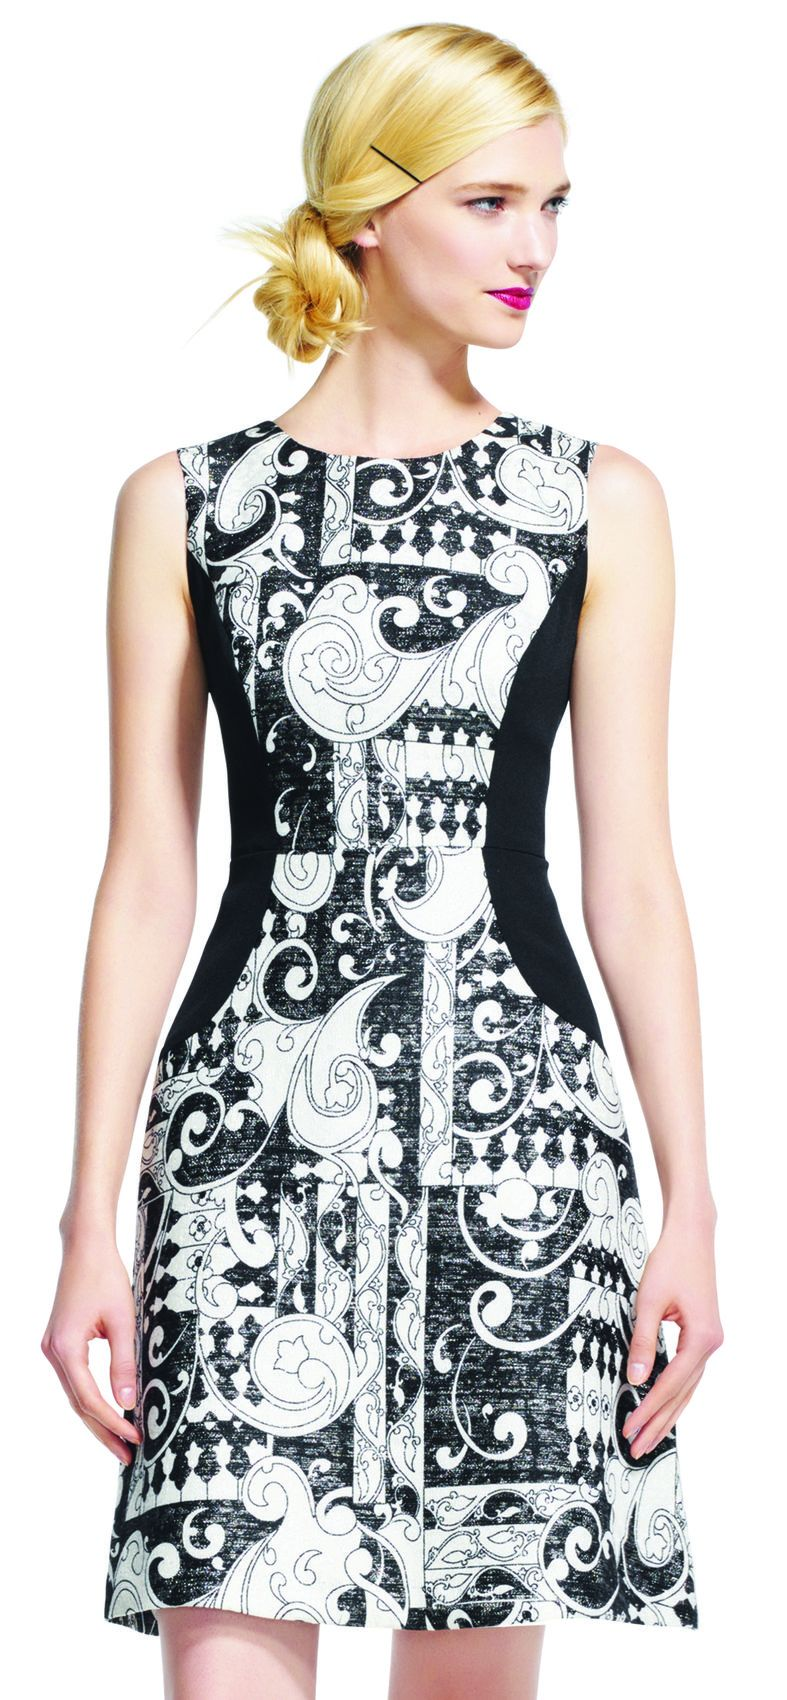 Adrianna Papell - AP1D100412 Sleeveless Print Sheath Short Dress In Black and White